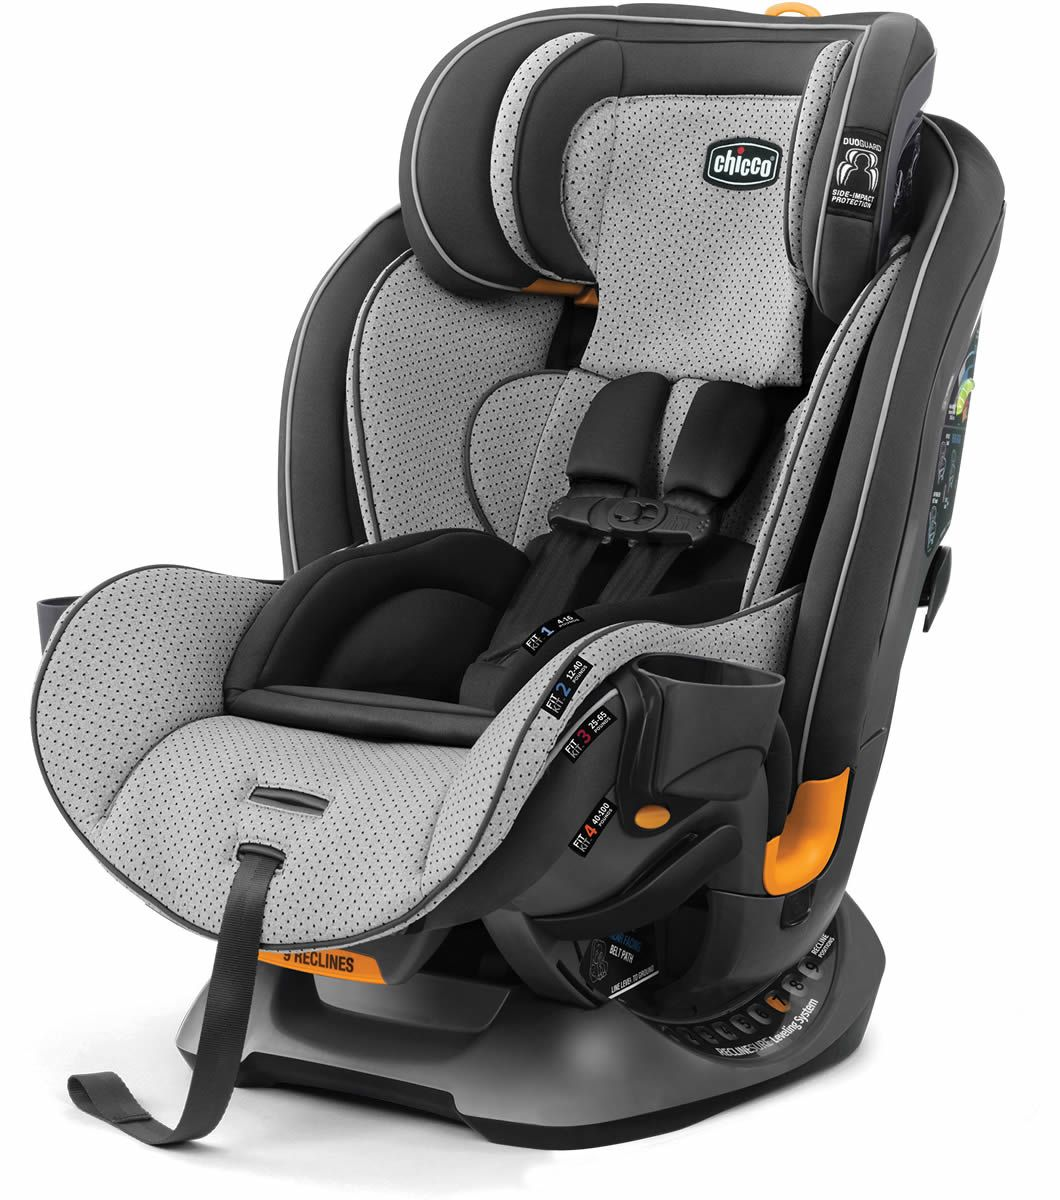 Best Convertible Car Seats for Infants in 2020 | Best ...